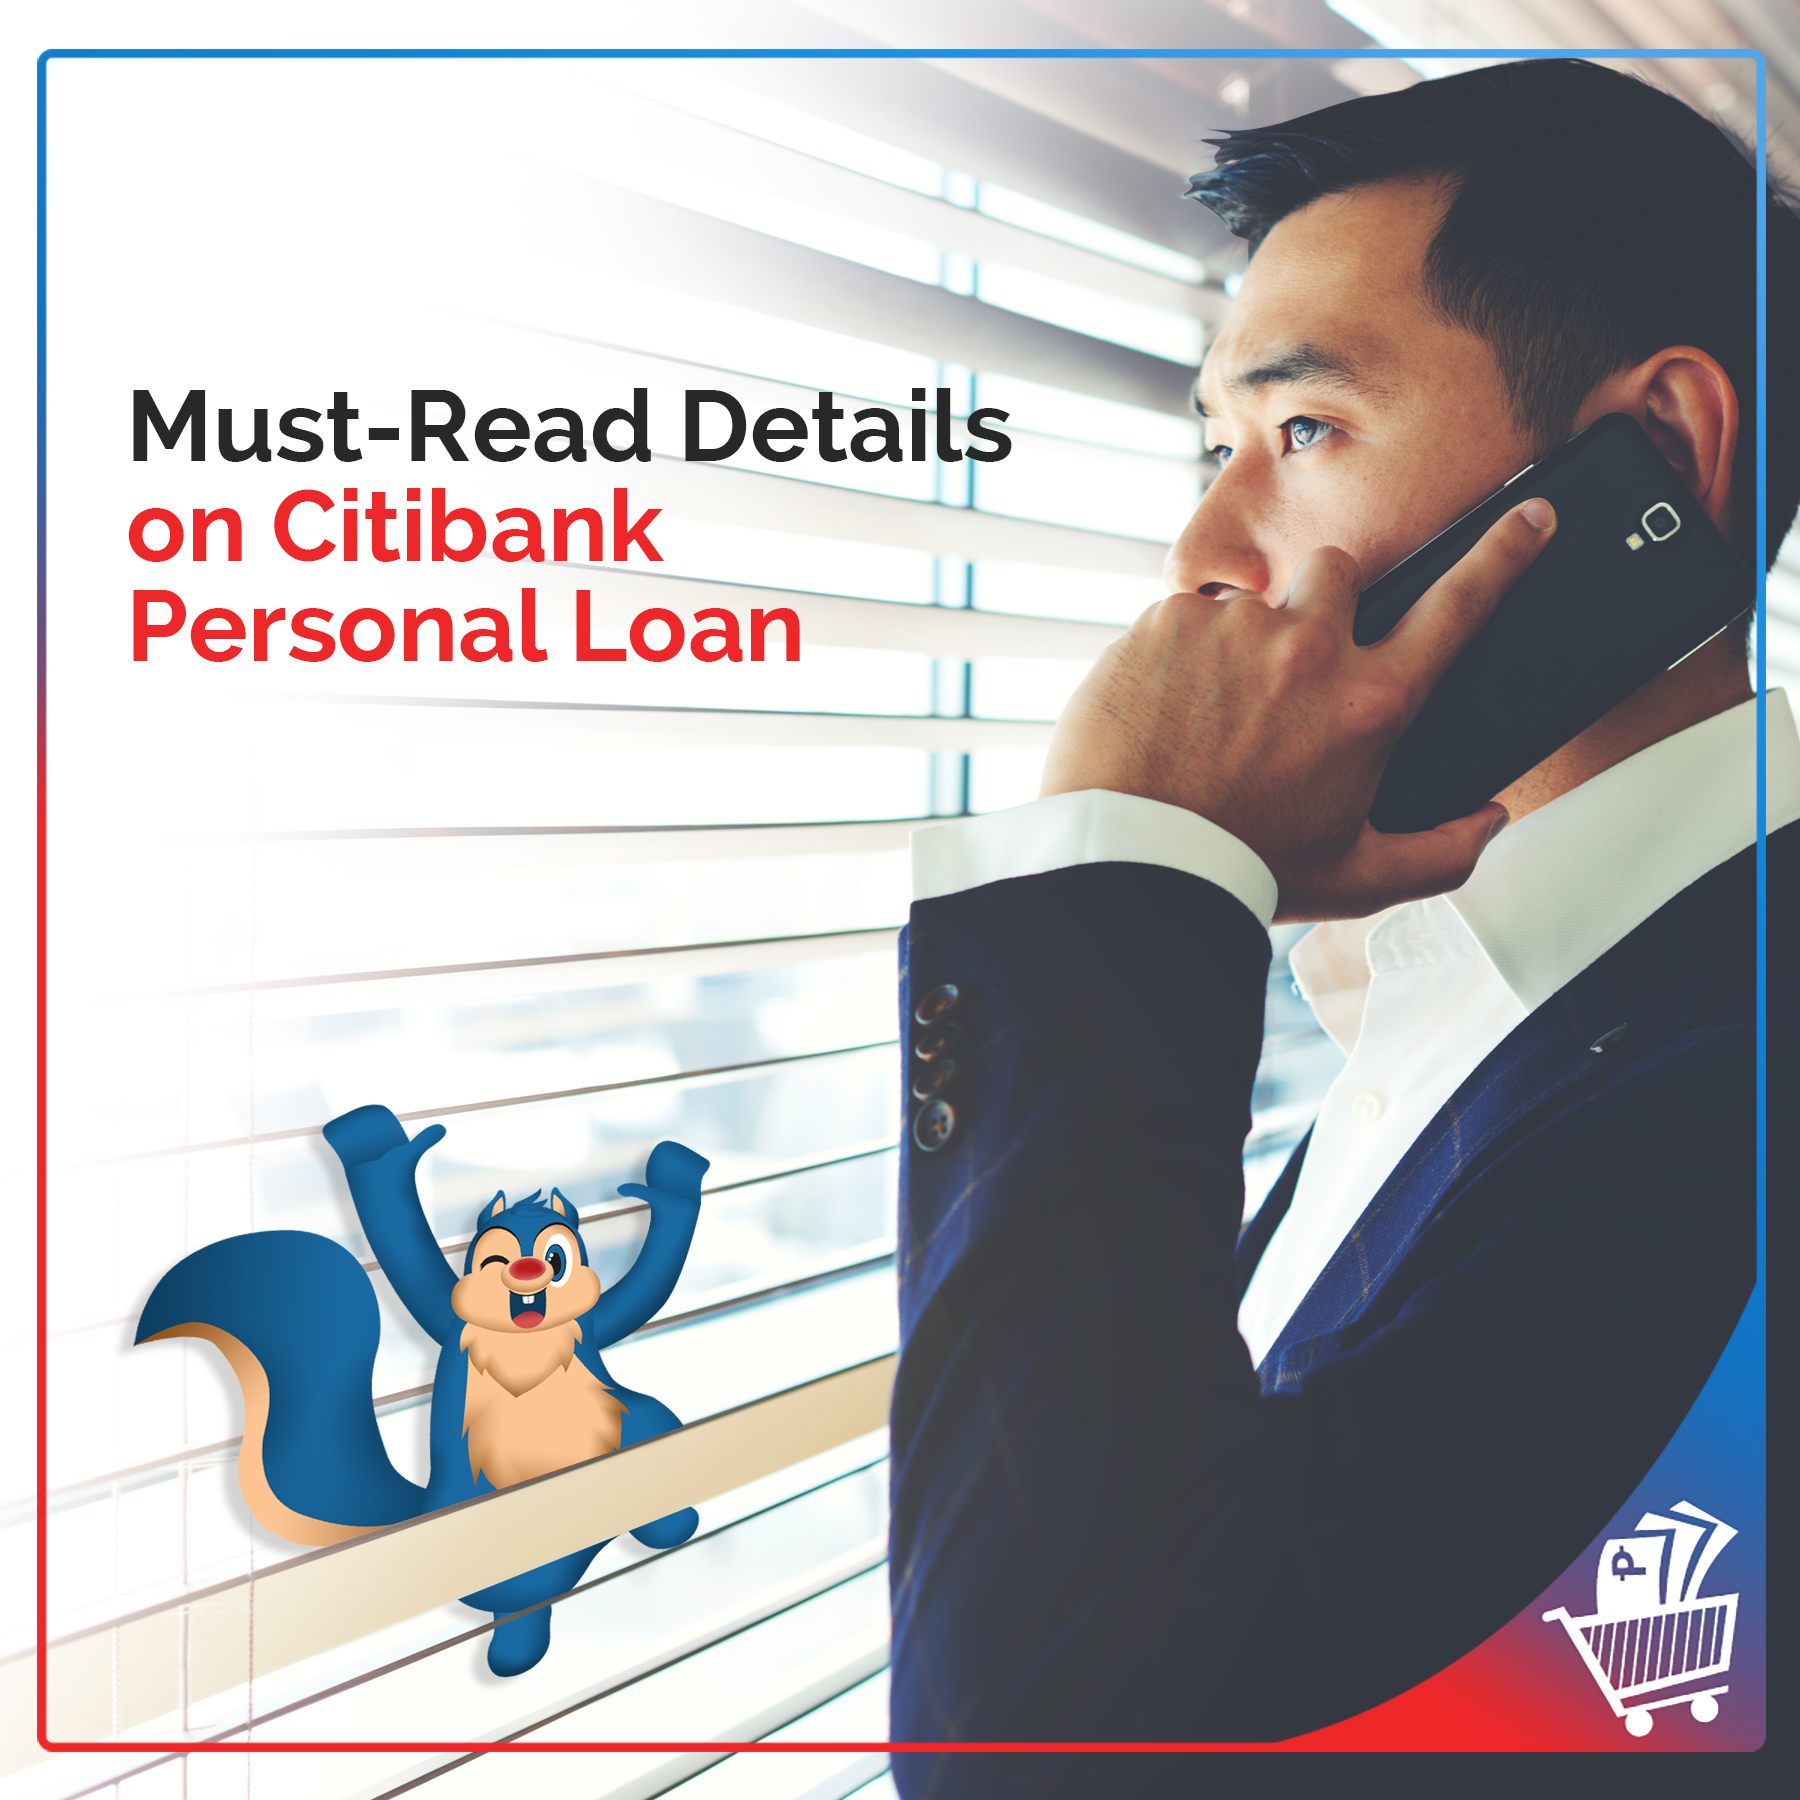 Must Read Details On Citibank Personal Loan